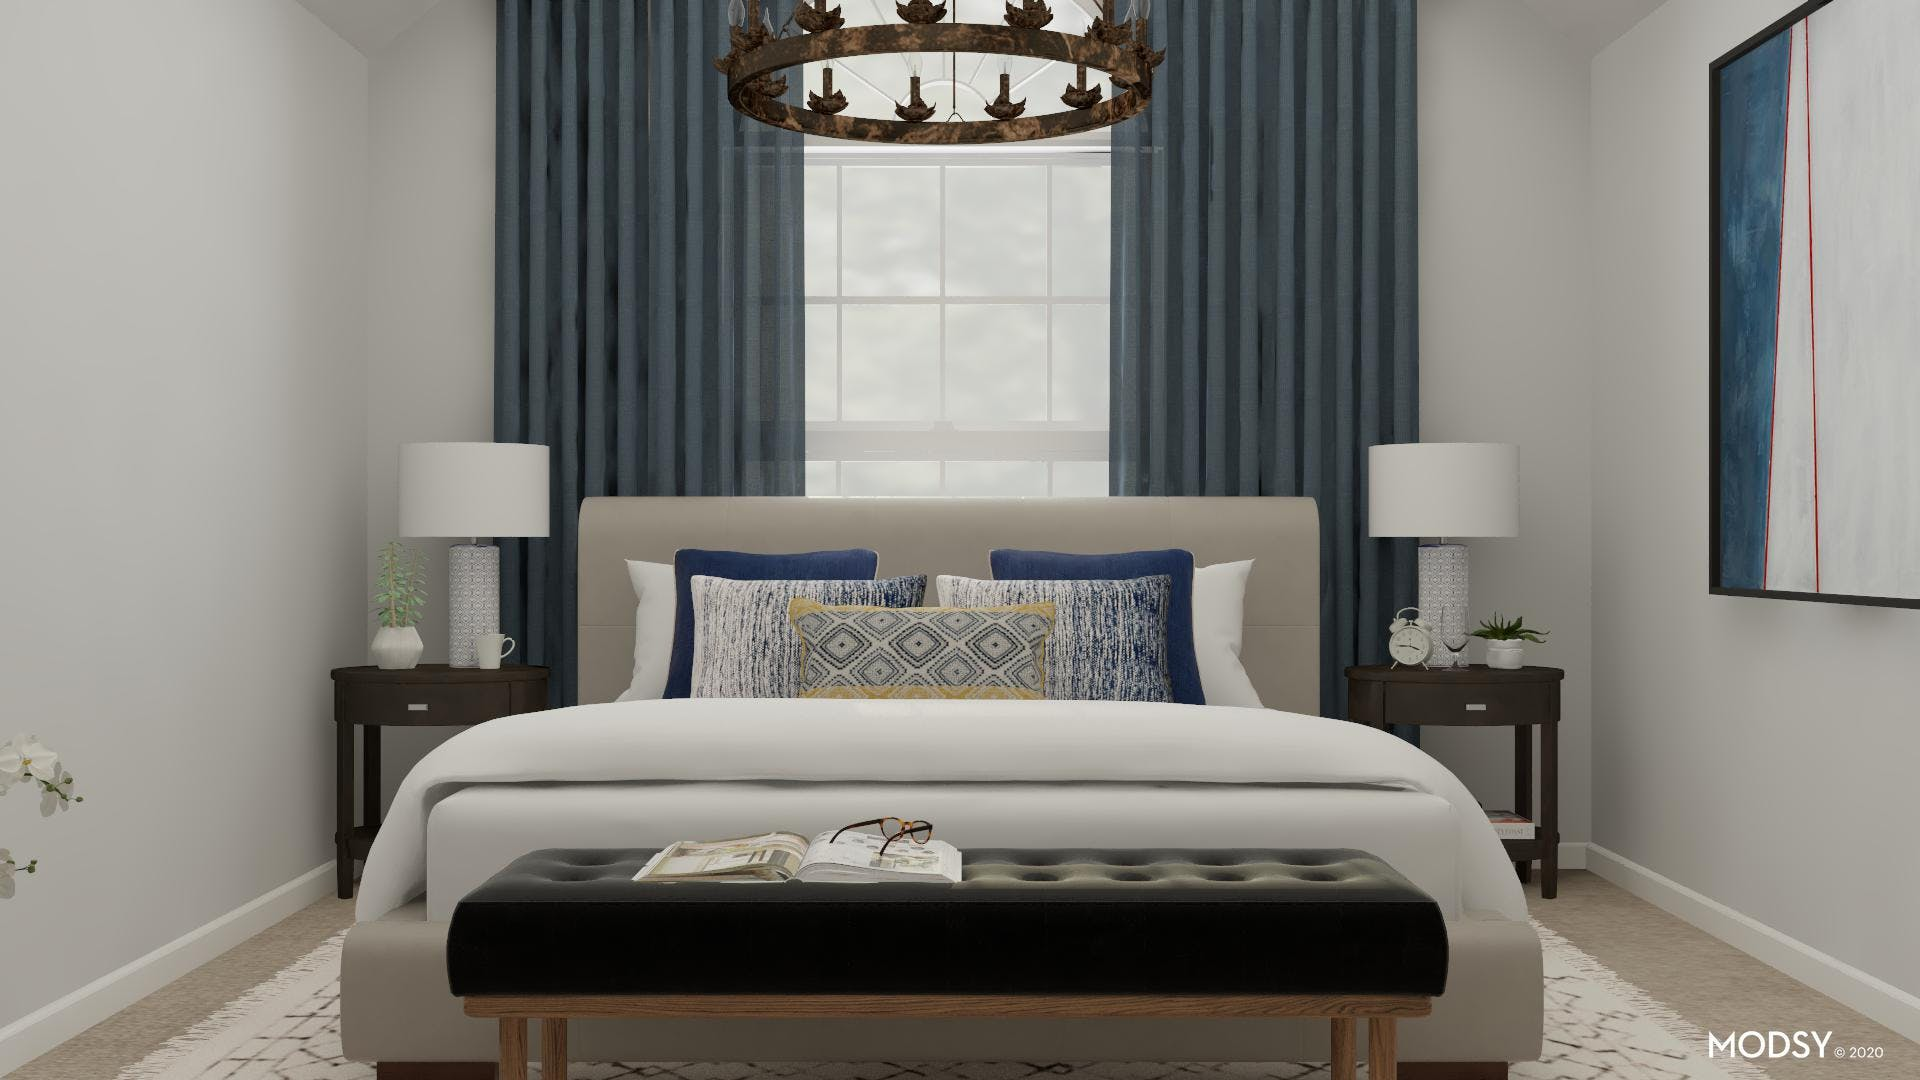 Balance and Blue Accents of a Traditional Bedroom